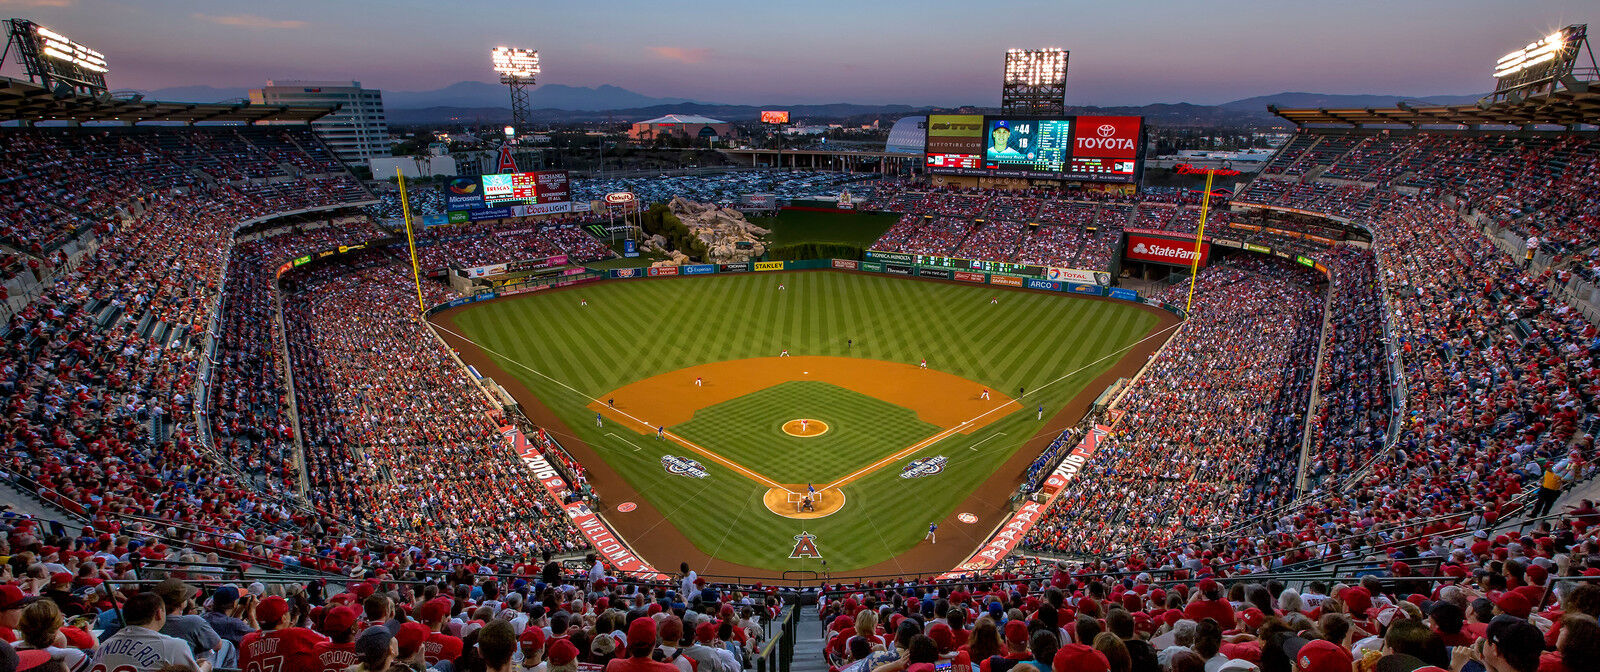 Oakland Athletics at Los Angeles Angels Tickets (Fireworks)